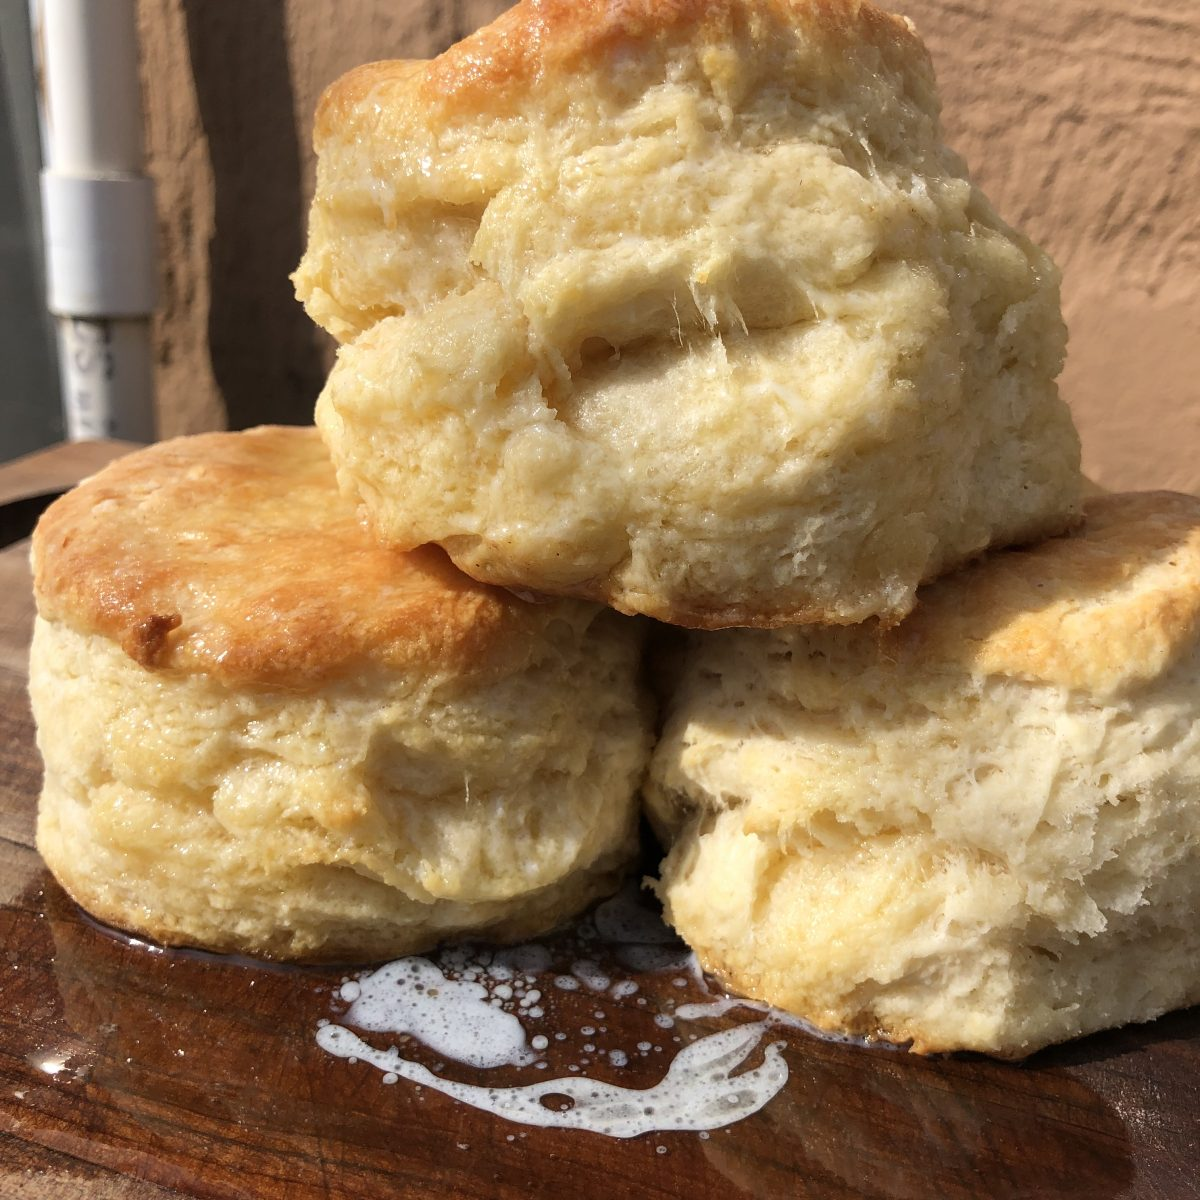 Buttermilk biscuits by Jumoke Jackson